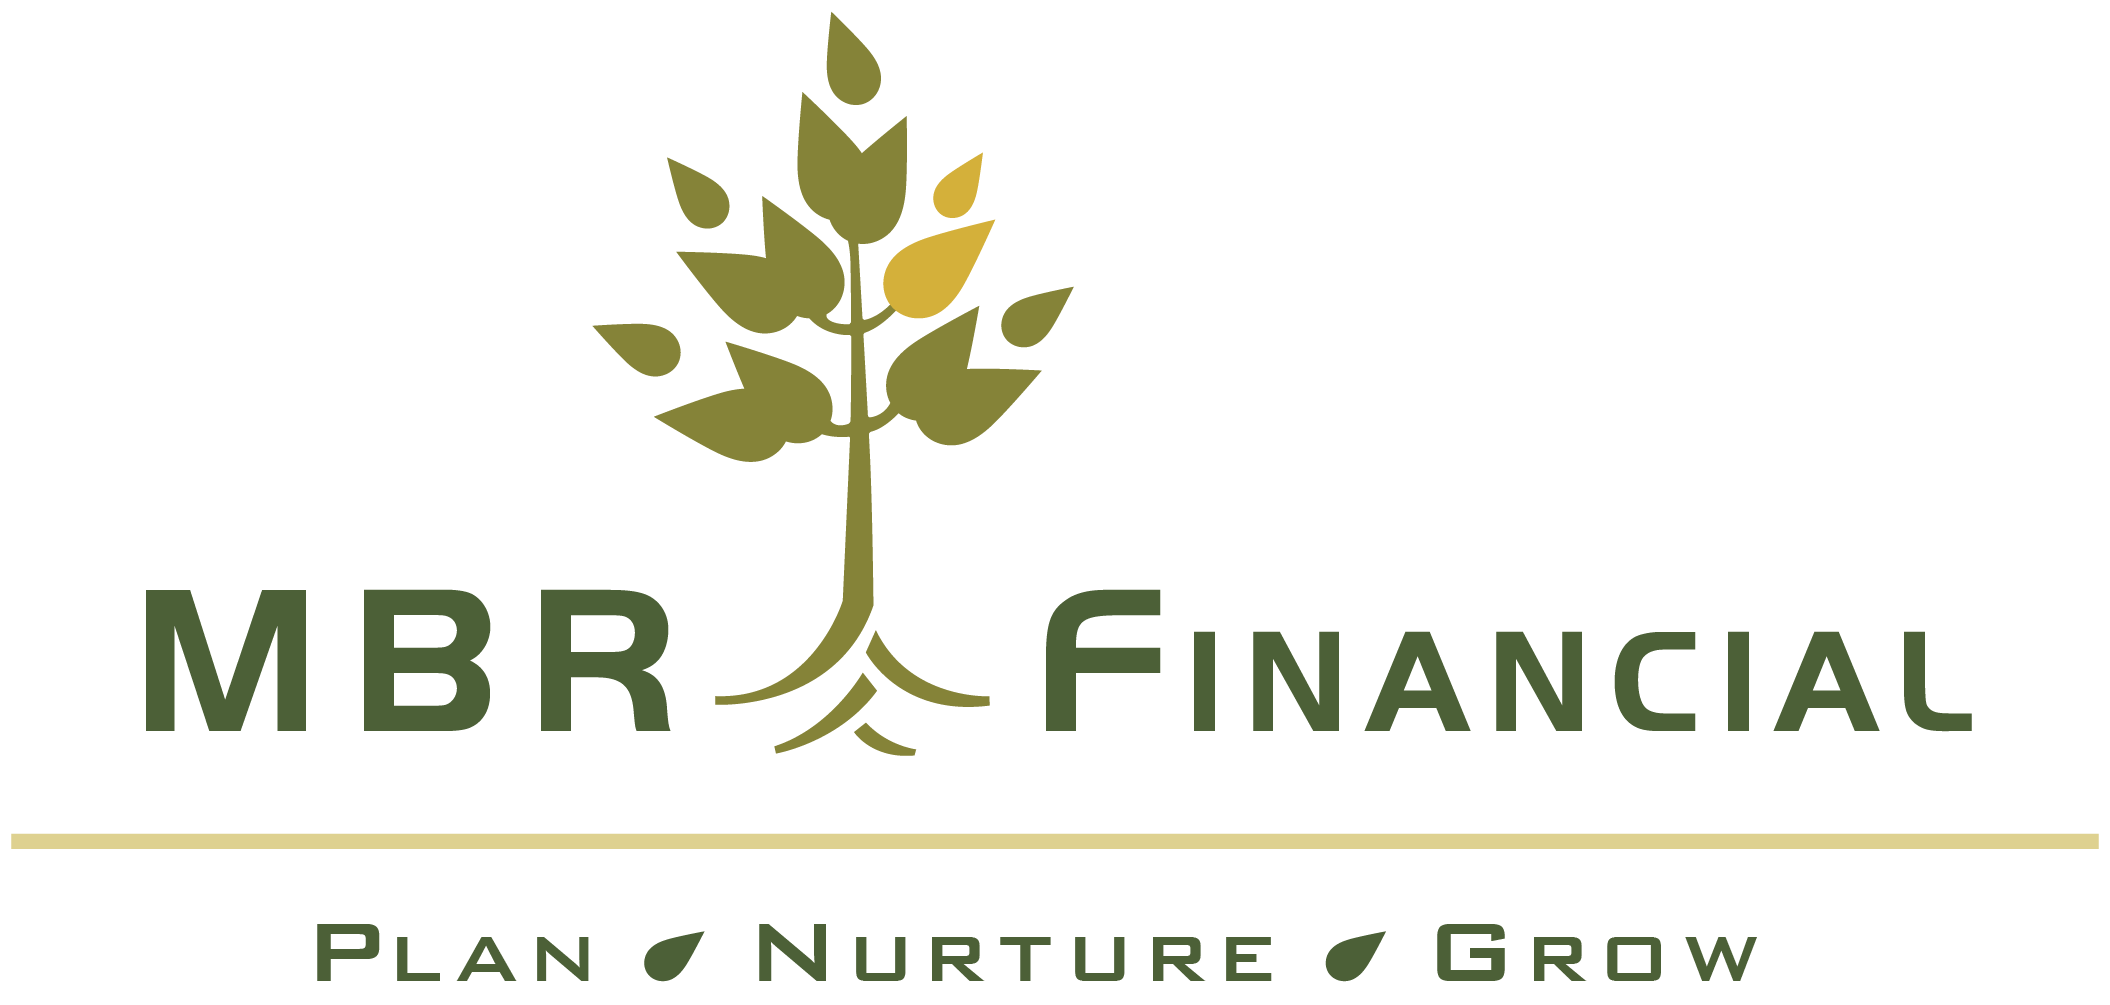 MBR Financial